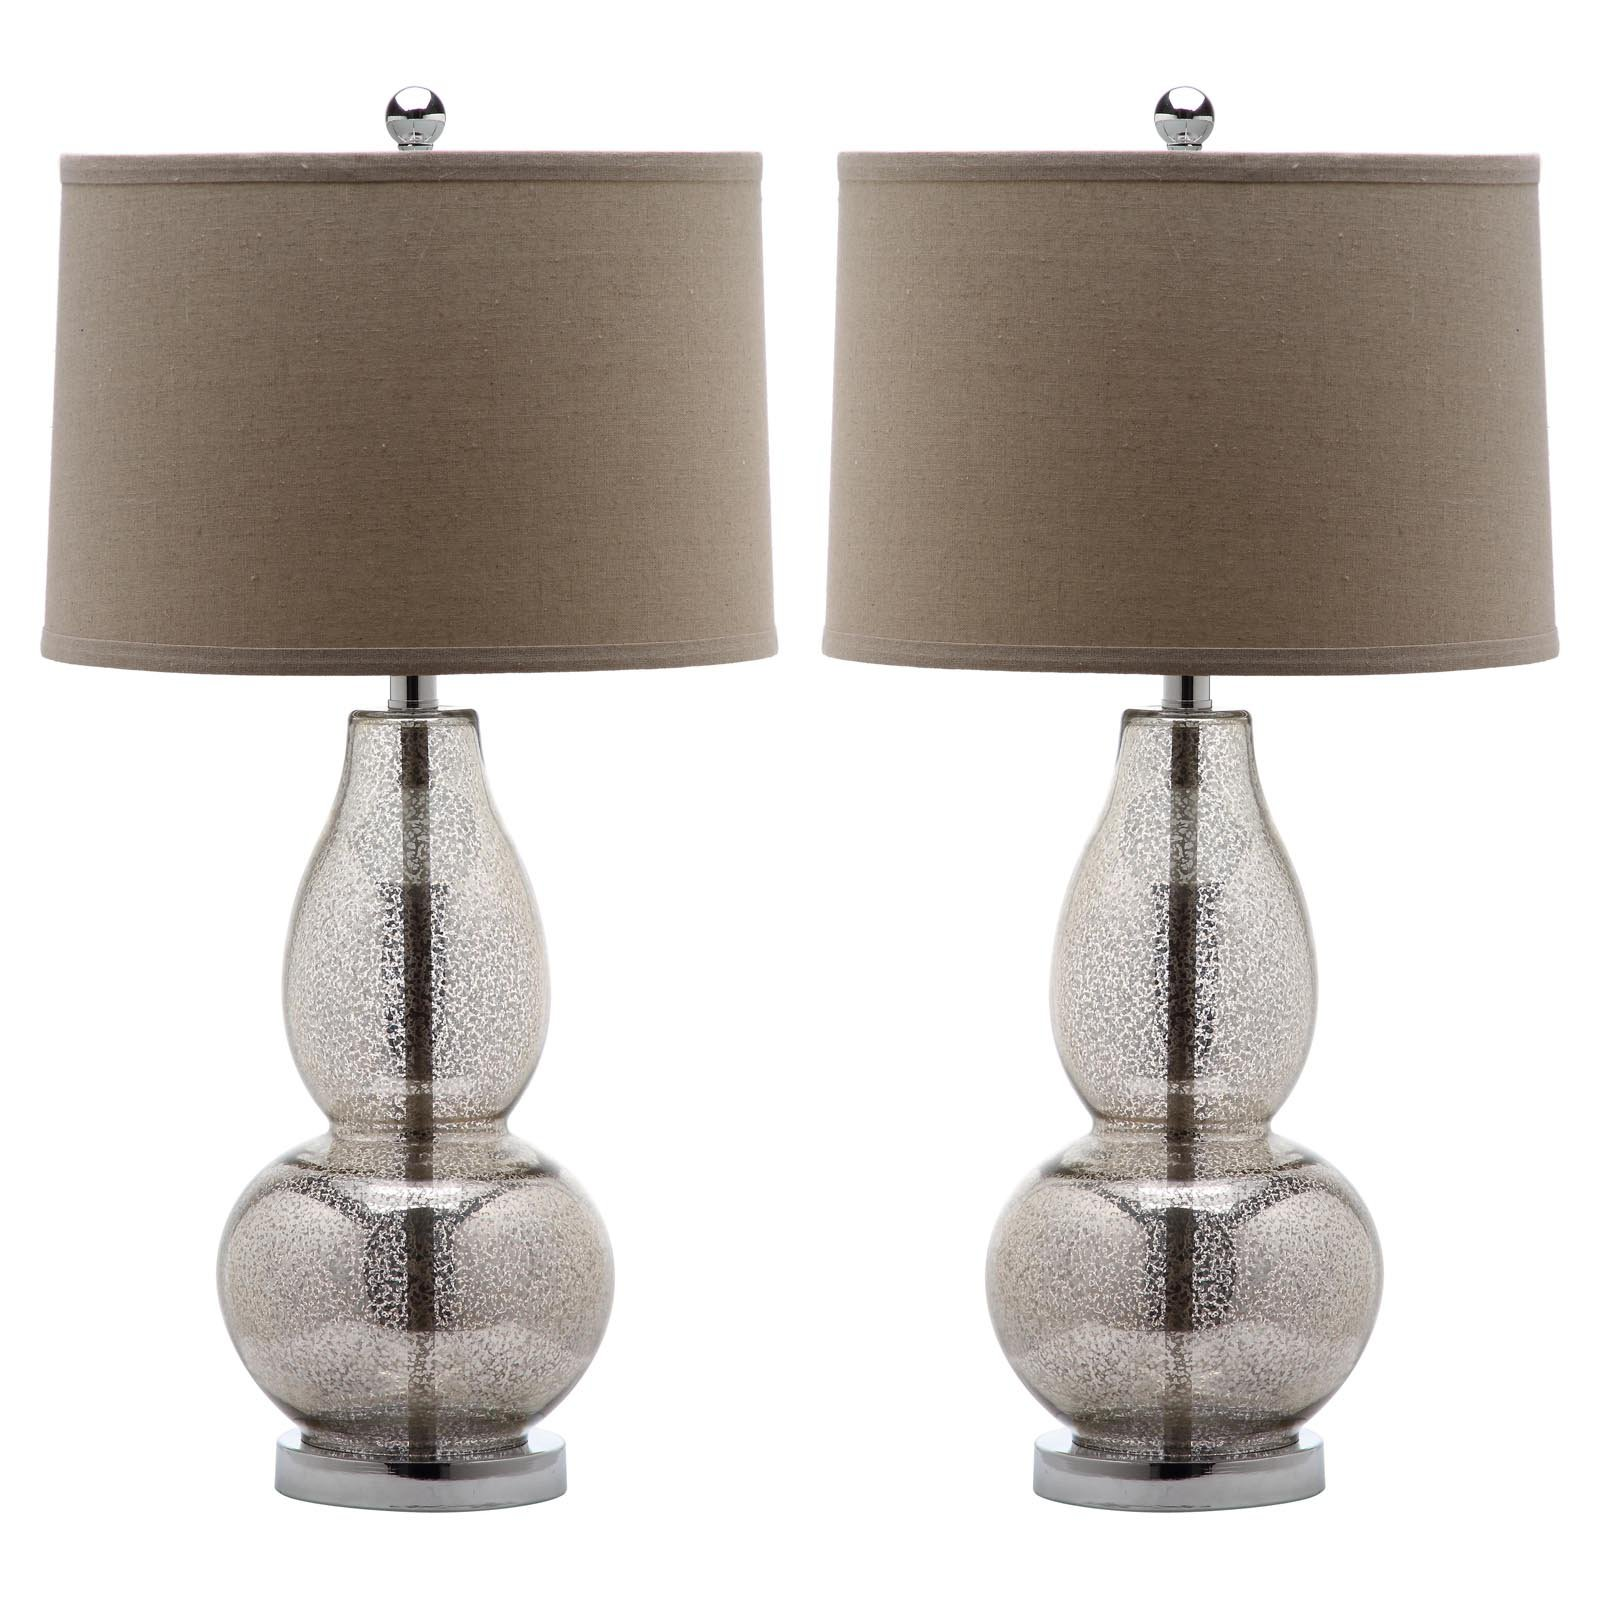 Safavieh Mercurio Lit4155 Double Gourd Table Lamp Set Of 2